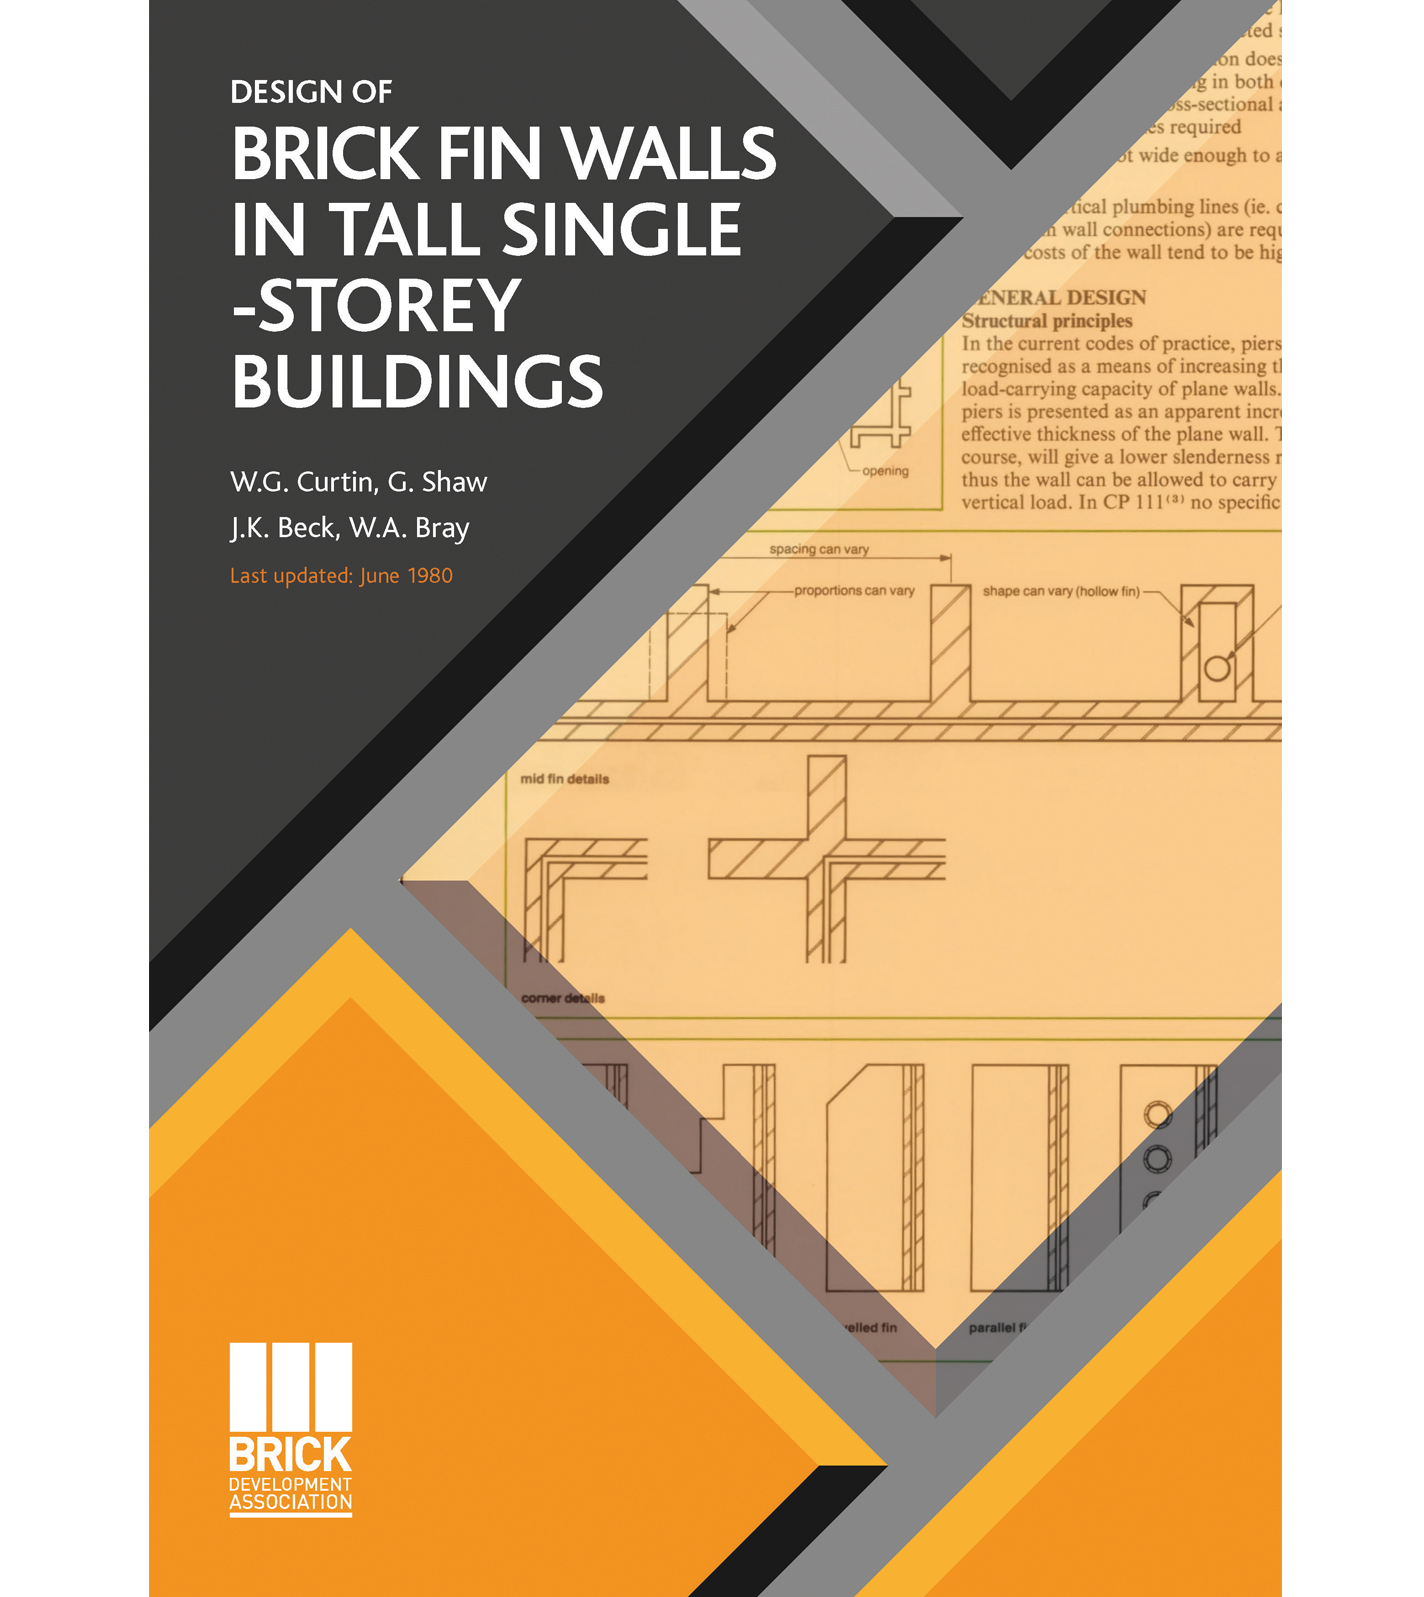 BRICK FIN WALLS IN TALL SINGLE-STOREY BUILDINGS